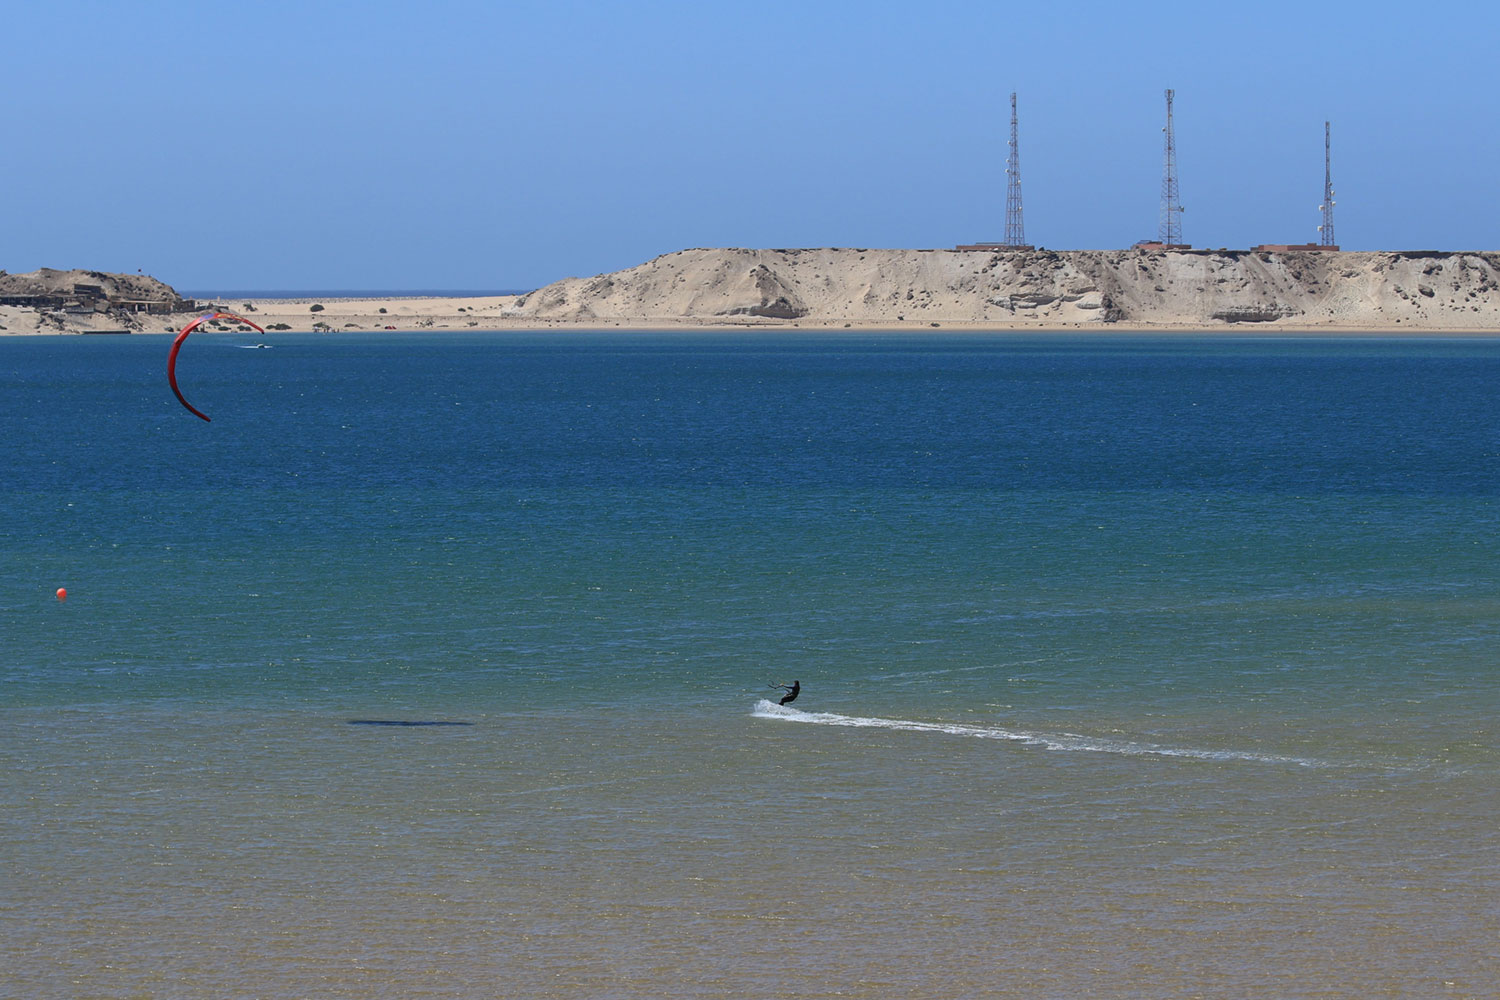 Stunning-view-Dakhla-Dreamin-Kitesurfing-Coaching-Holiday.jpg